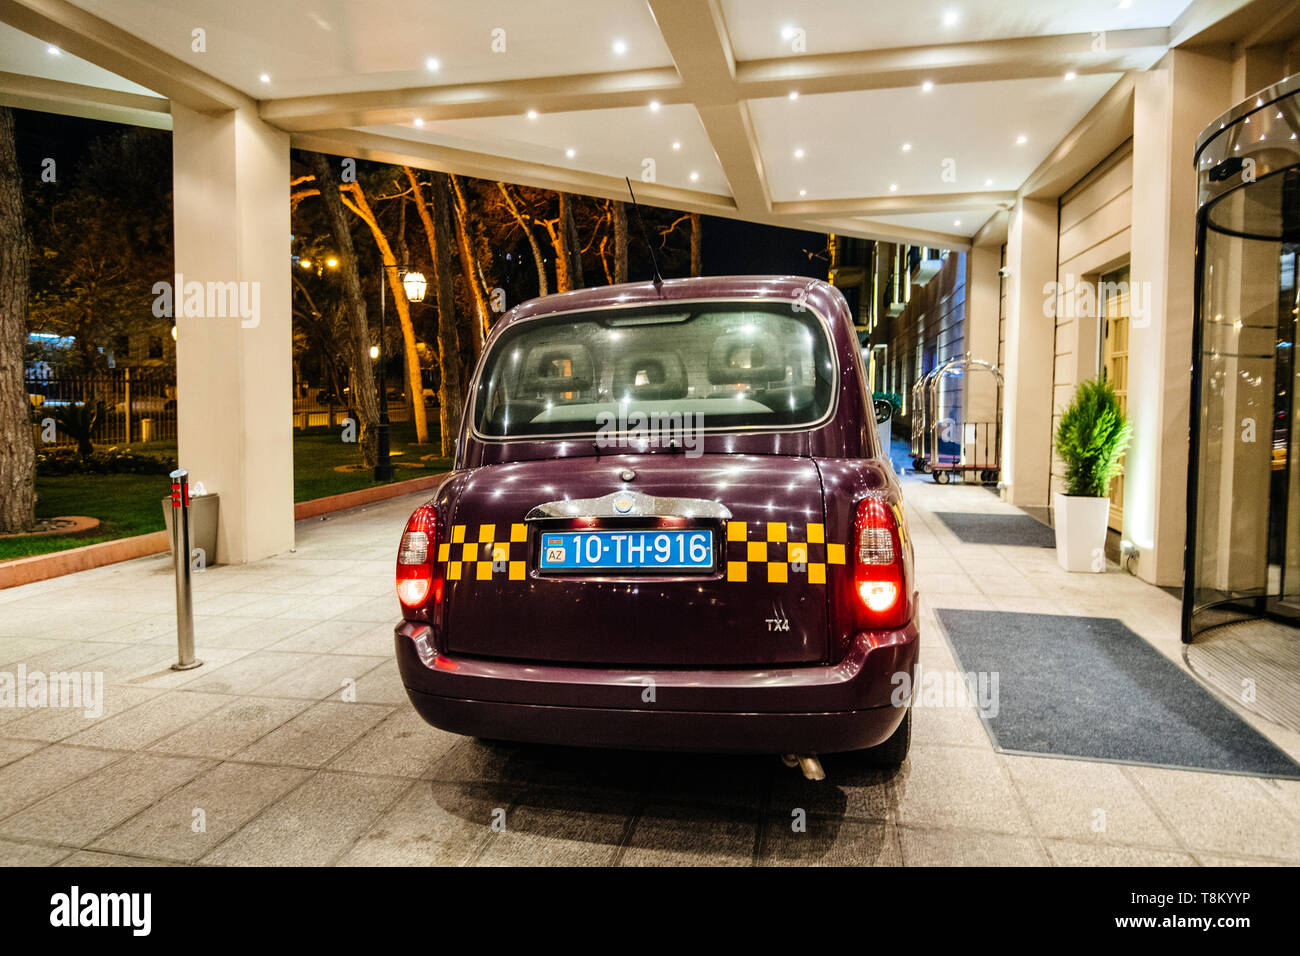 Baku, Azerbaijan - May 1, 2019: Rear view of traditional Azeri taxi cab hackney carriage taxi in front of Hyatt luxury five star hotel in Baku - Stock Image